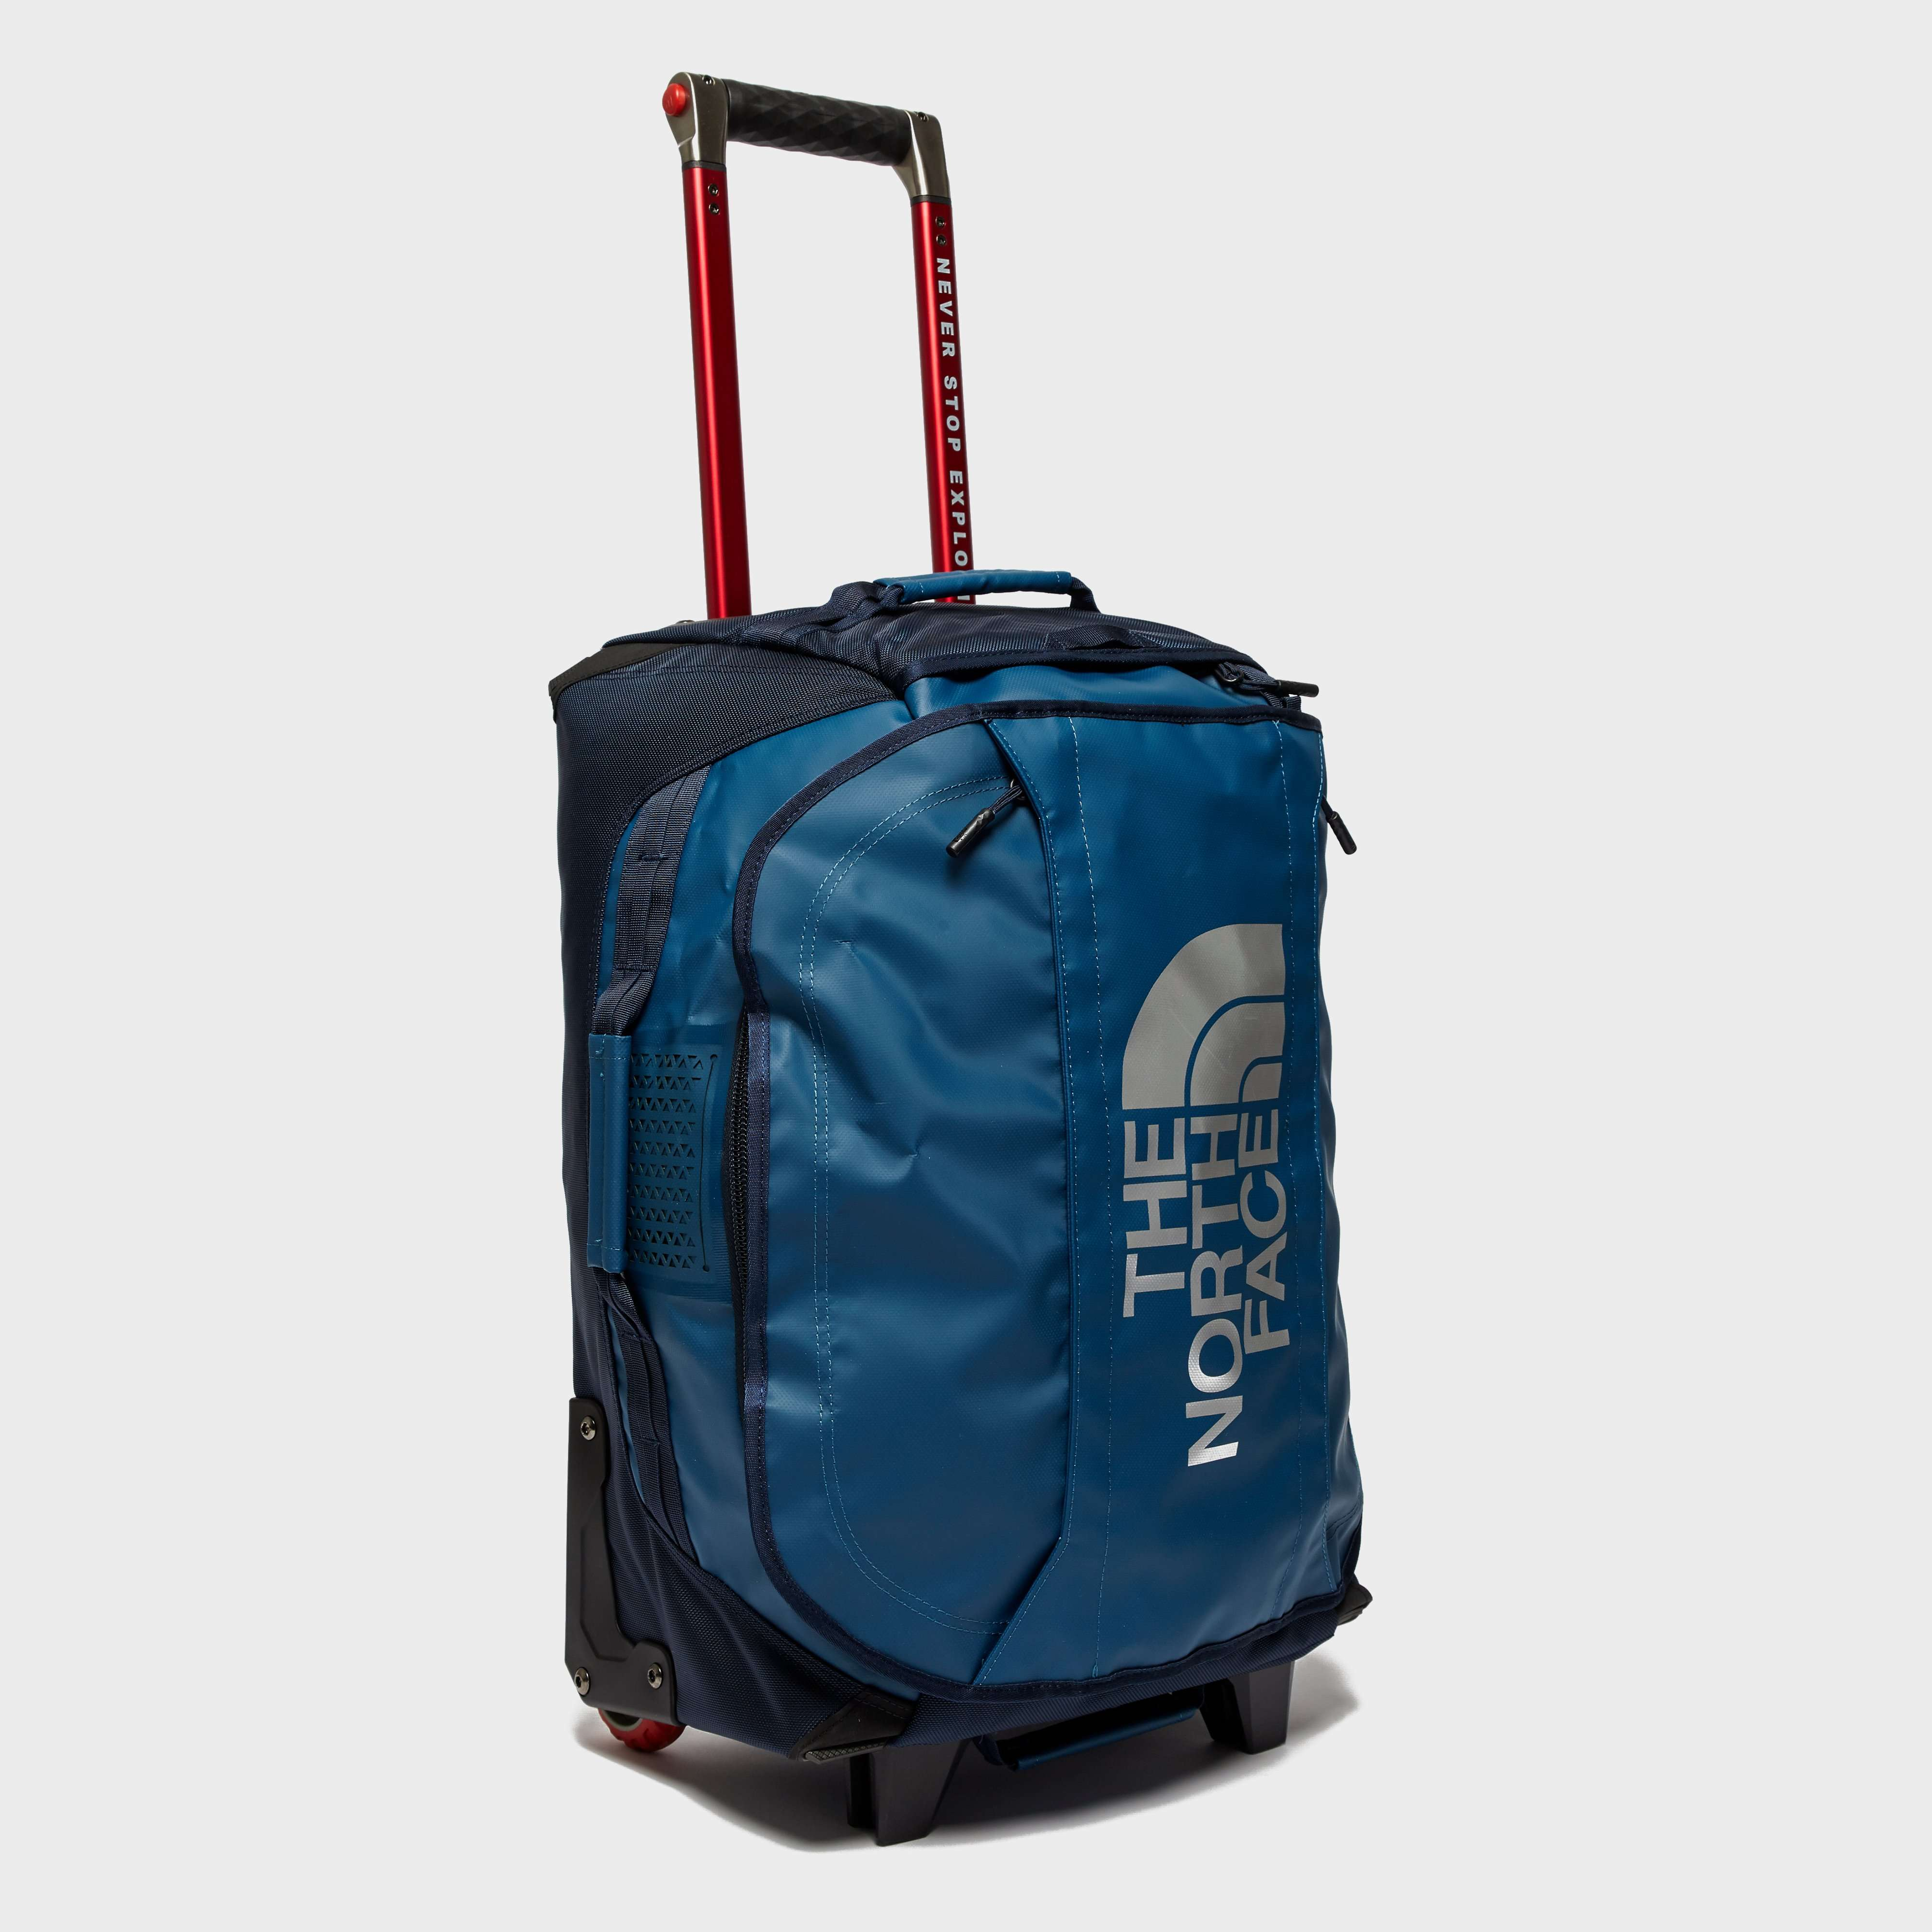 THE NORTH FACE Rolling Thunder 22L Travel Bag